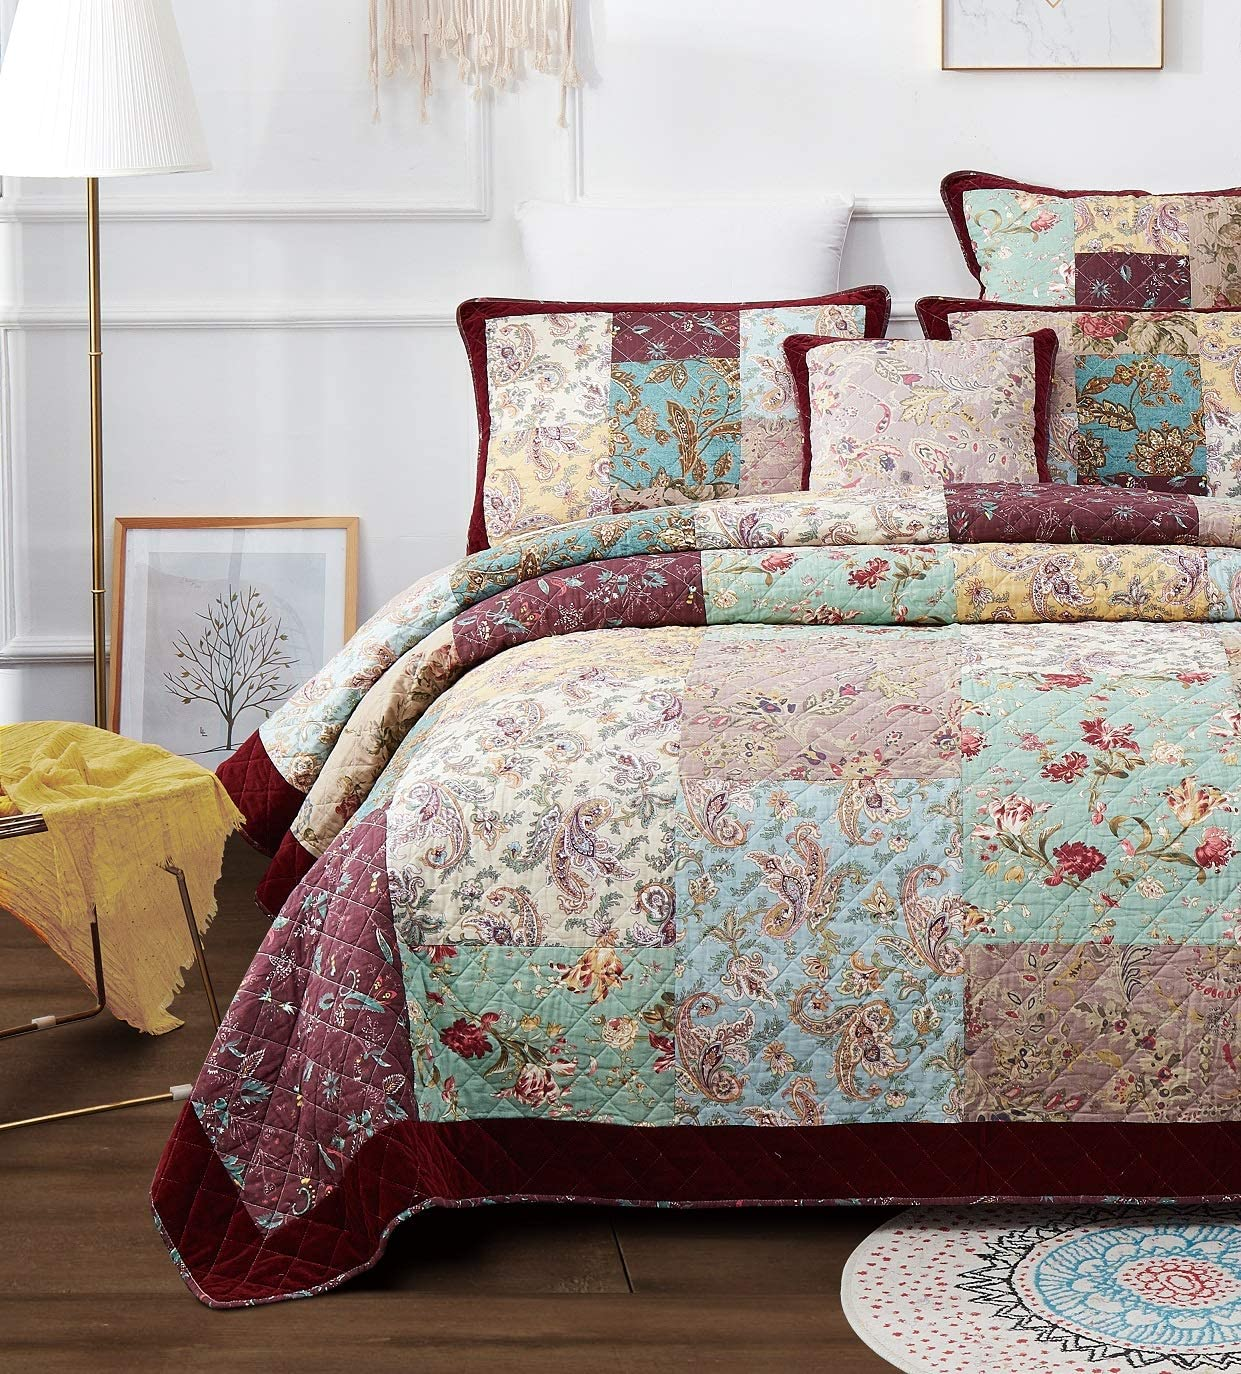 DaDa Bedding Bohemian Patchwork Bedspread - Cotton Burgundy Wine Velvety Trim - Vintage Floral Roses Paisley - Bright Vibrant Multi-Colorful Quilted Set - Full - 3-Pieces